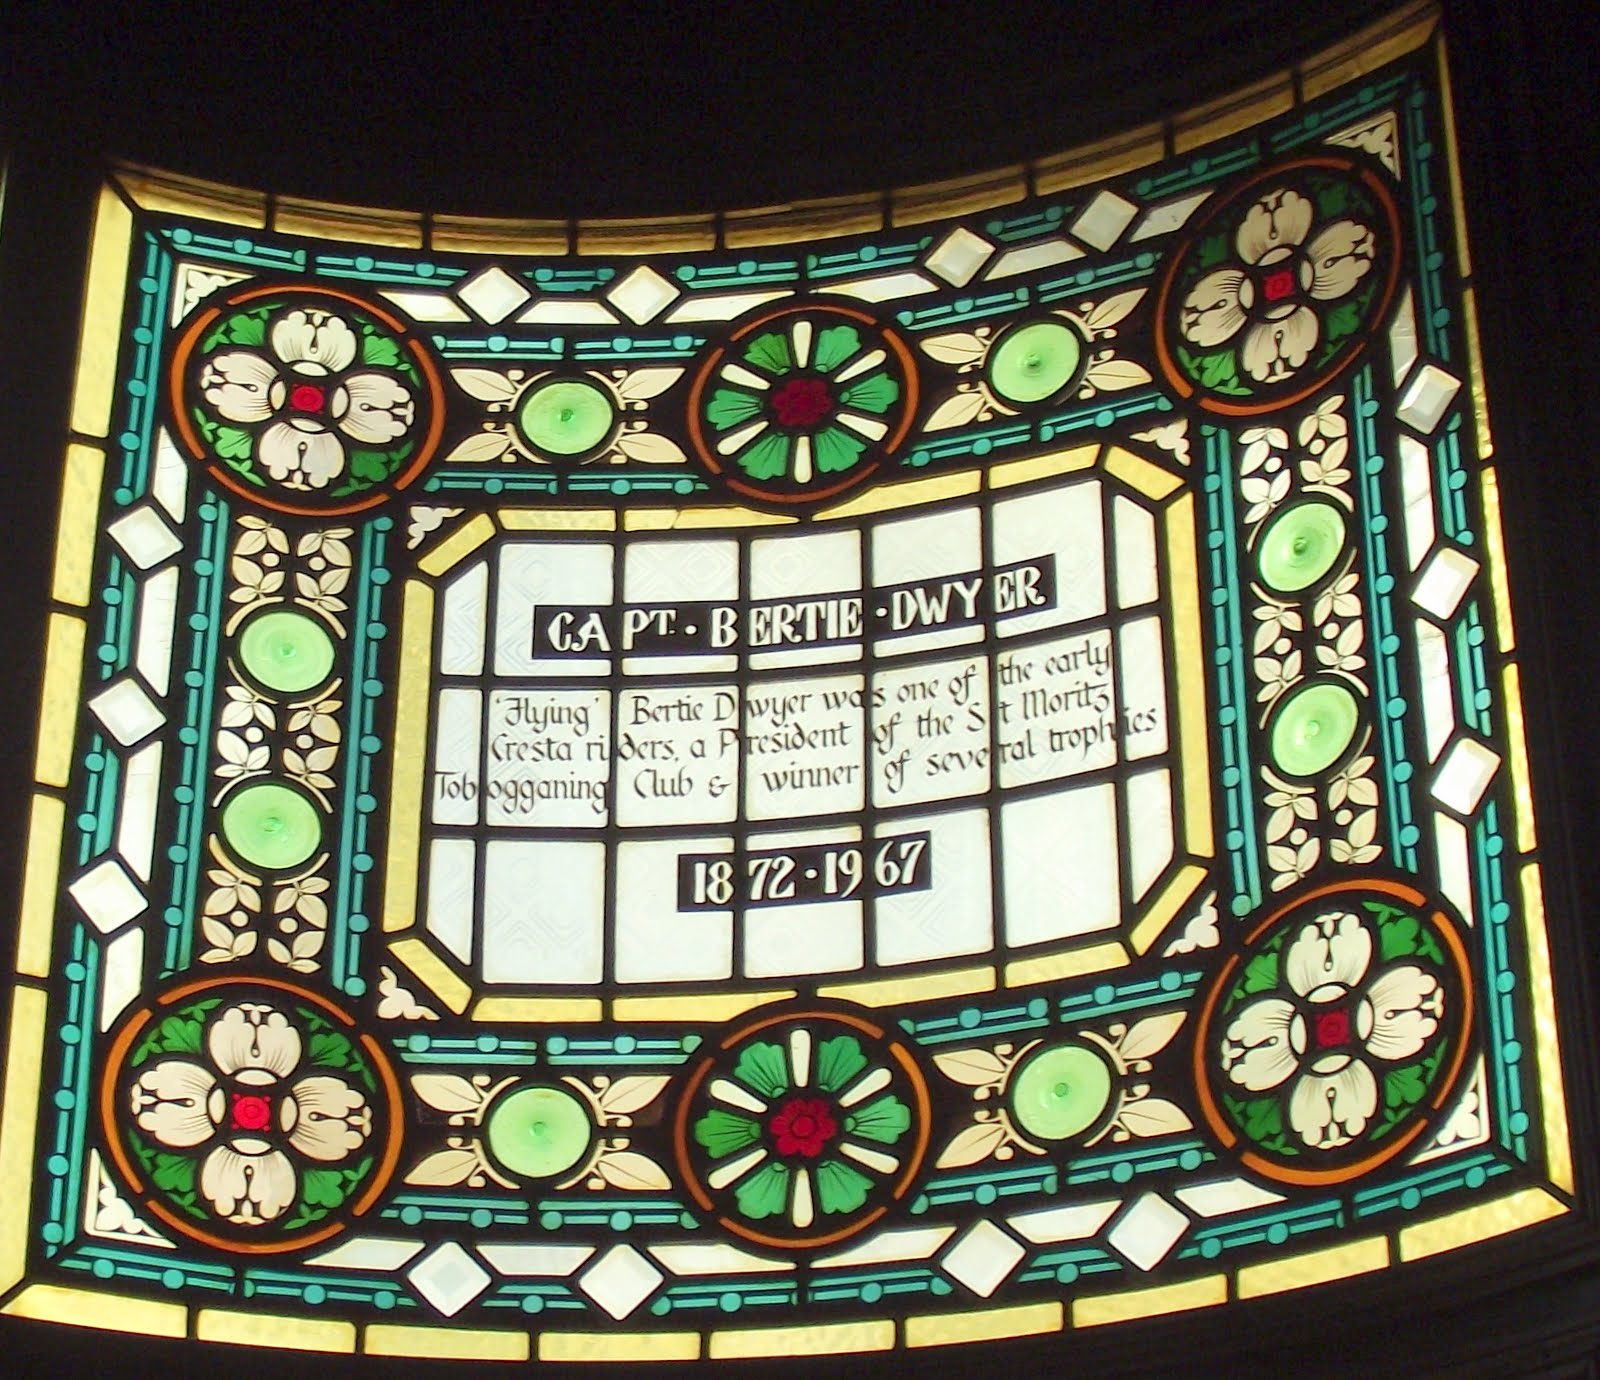 Capt Bertie Dwyer stained glass at the Champion pub